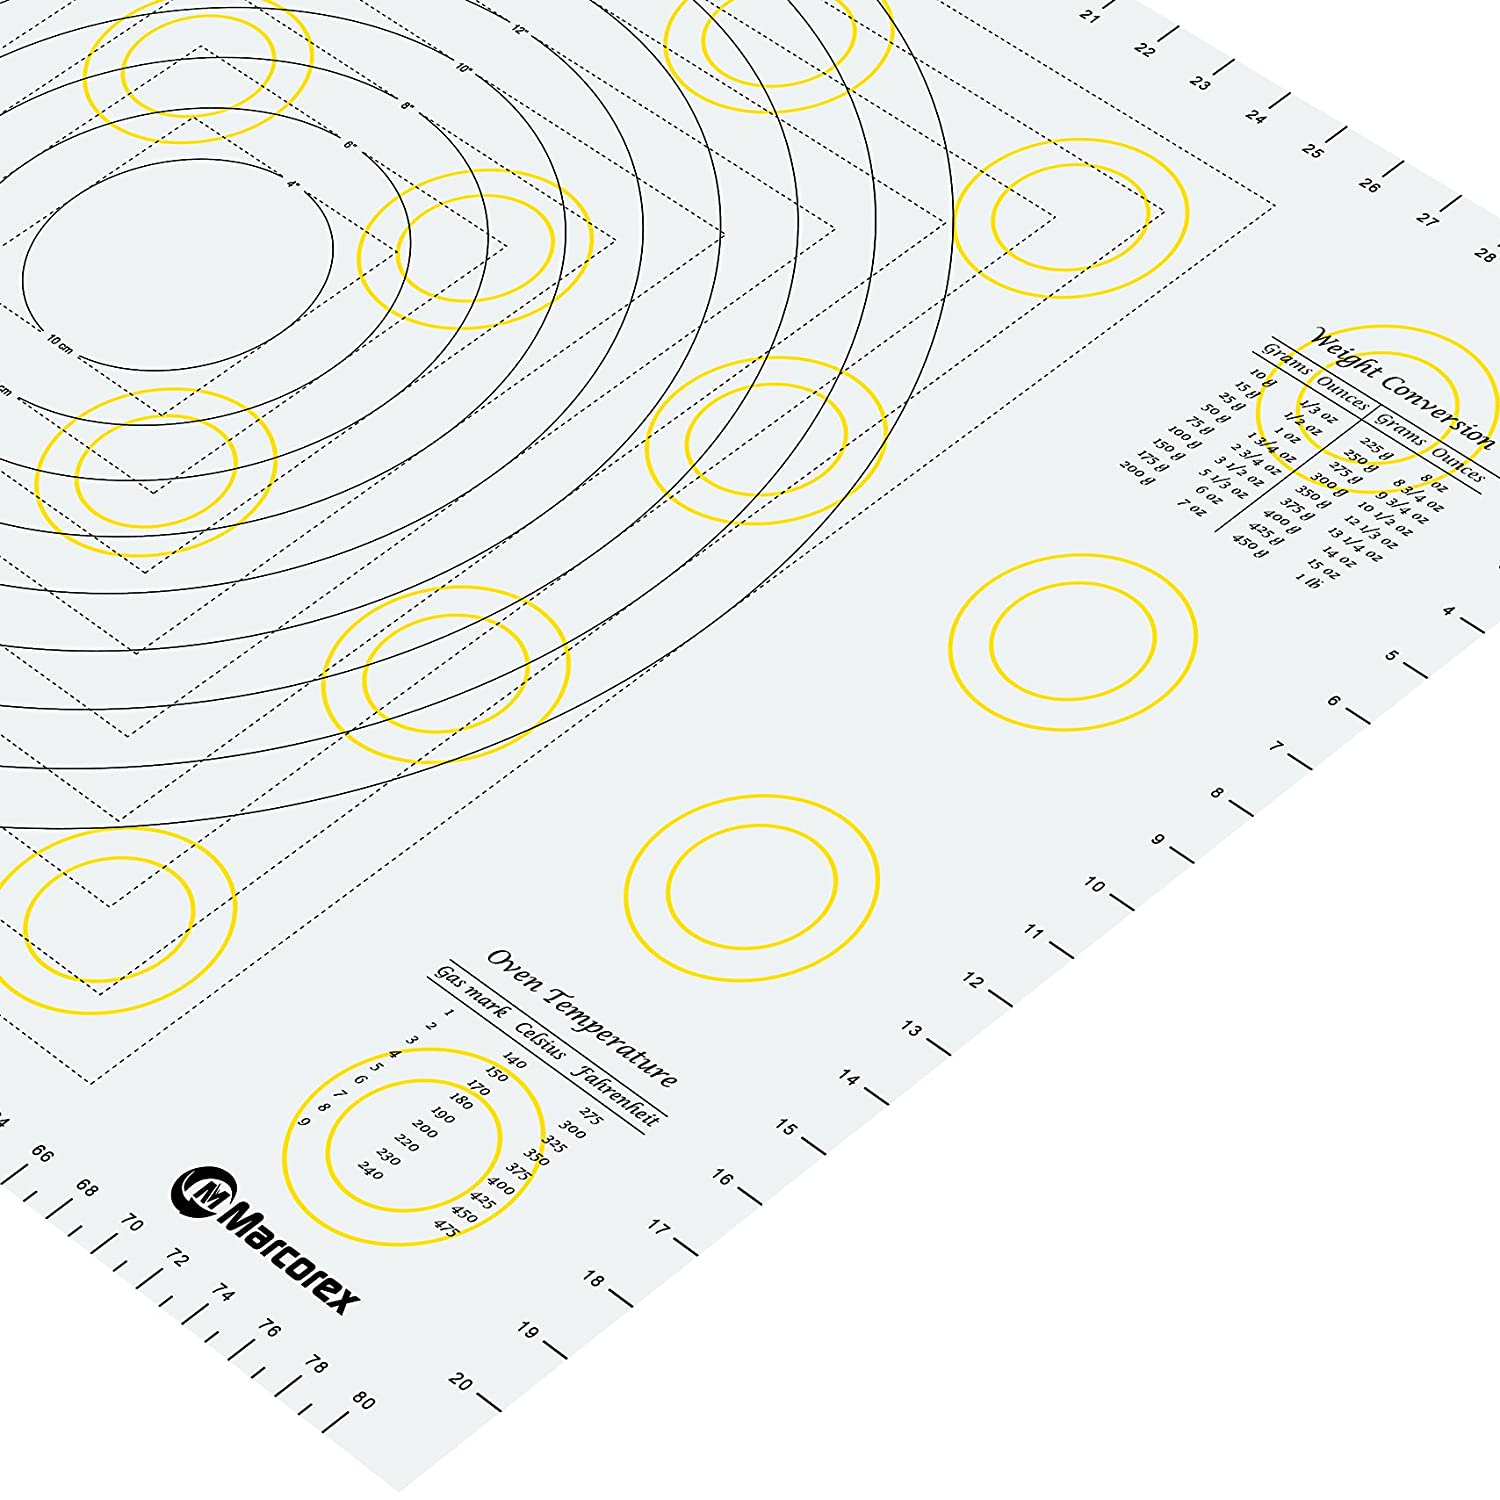 Amazon pastry mat xx large 34 x 23 with measurements and amazon pastry mat xx large 34 x 23 with measurements and conversion charts professional size non stick non slip extra large silicone fondant mat nvjuhfo Gallery